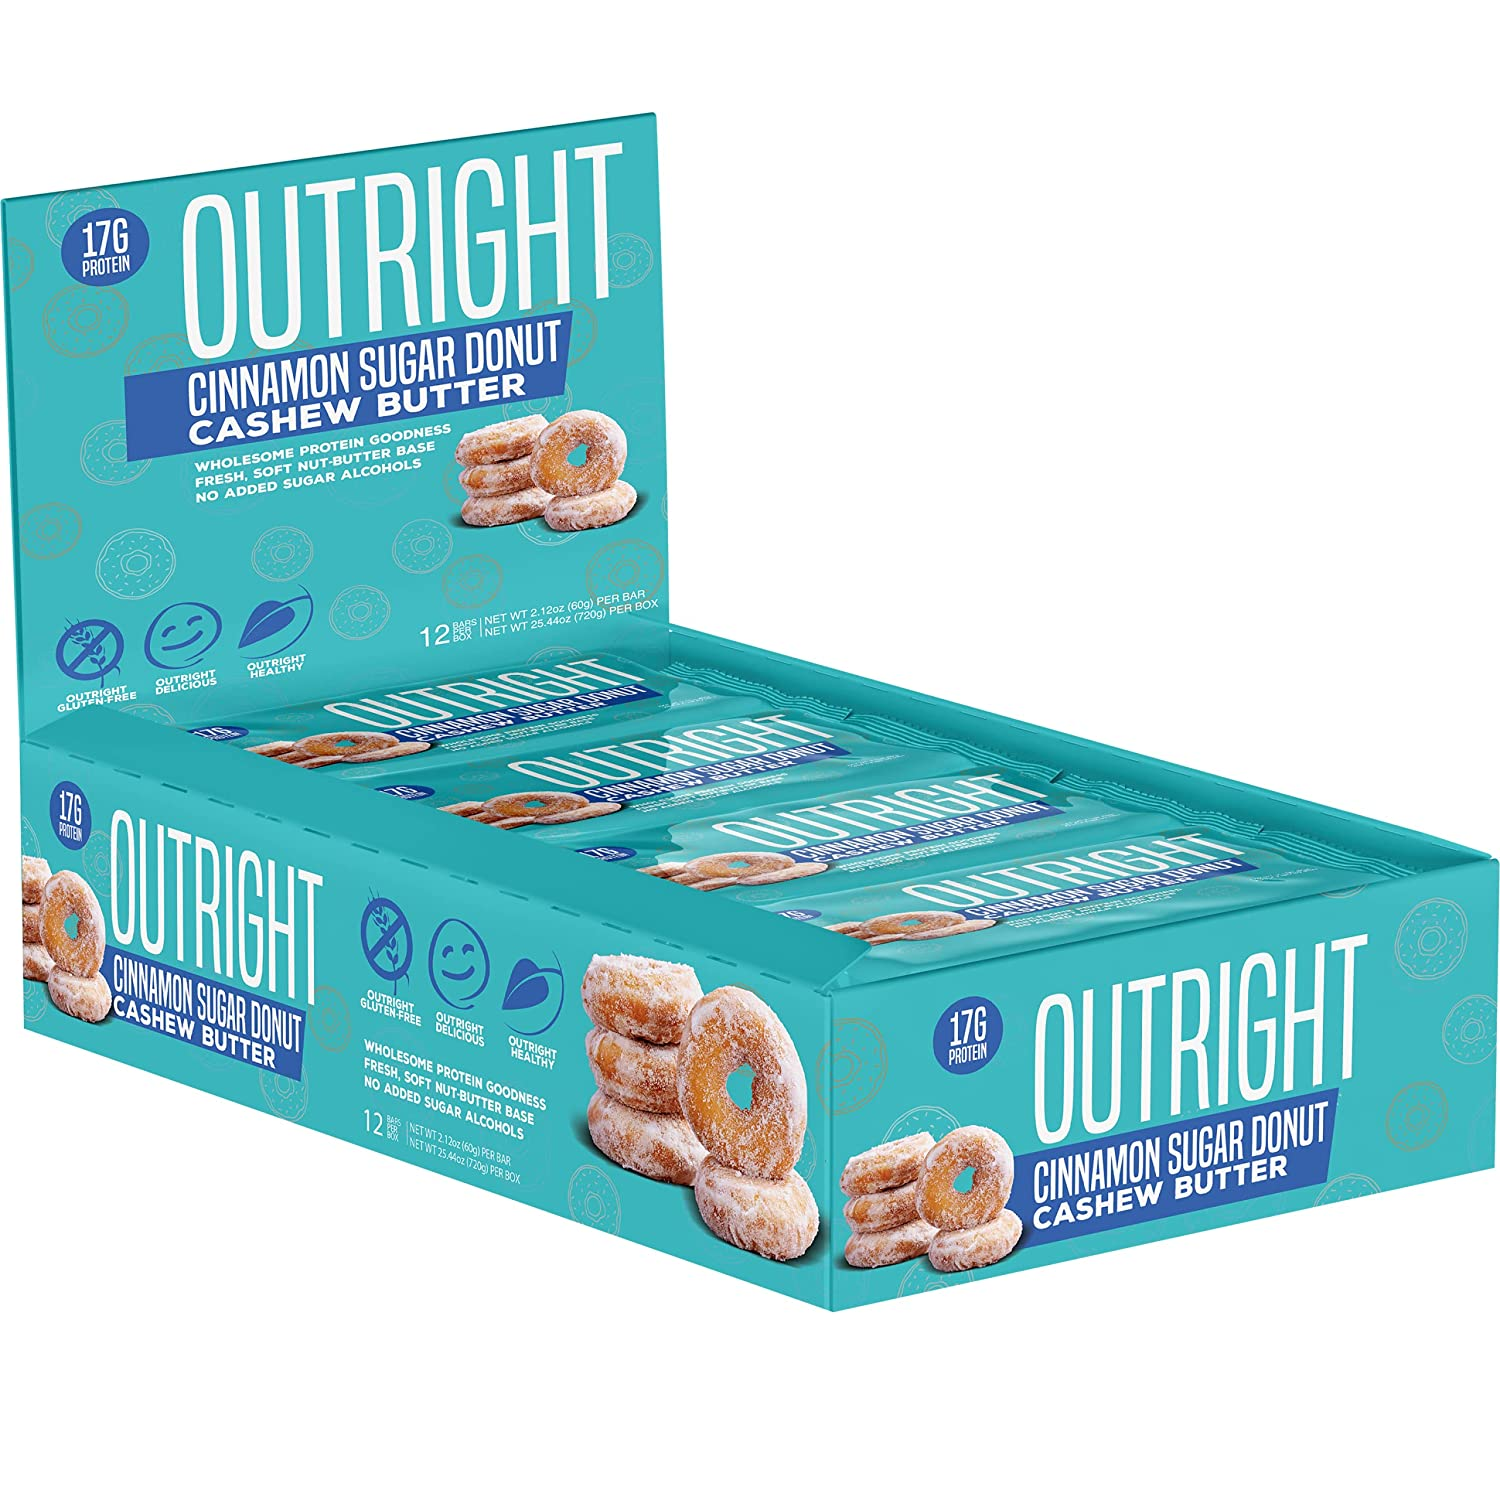 Outright Bar - Whole Food Protein Bar - 12 Pack - Cinnamon Sugar Donut Cashew Butter